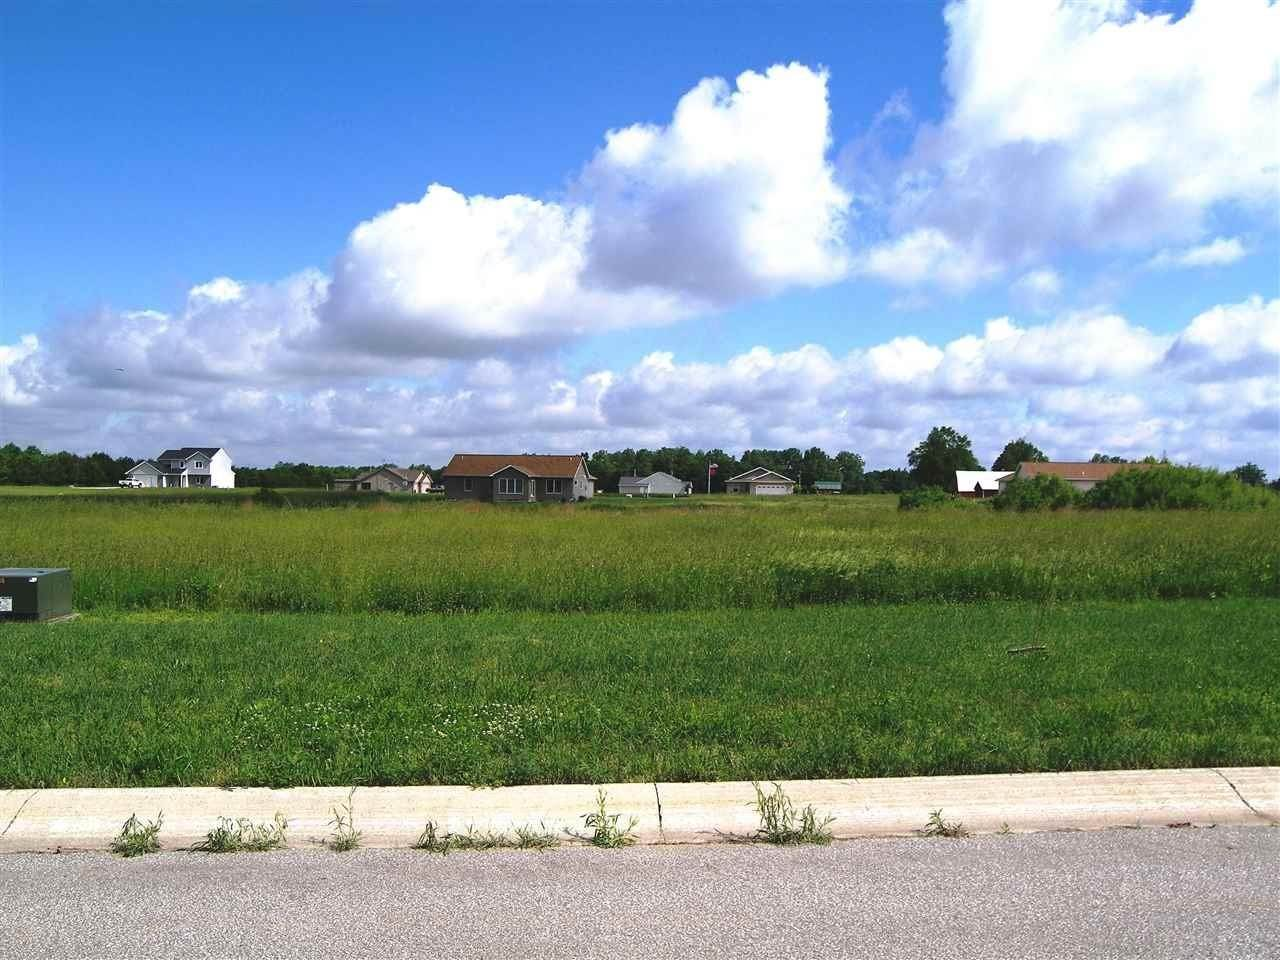 Residential Lots & Land for Sale at Lot 65 Baldwin Road North Webster, Indiana 46555 United States